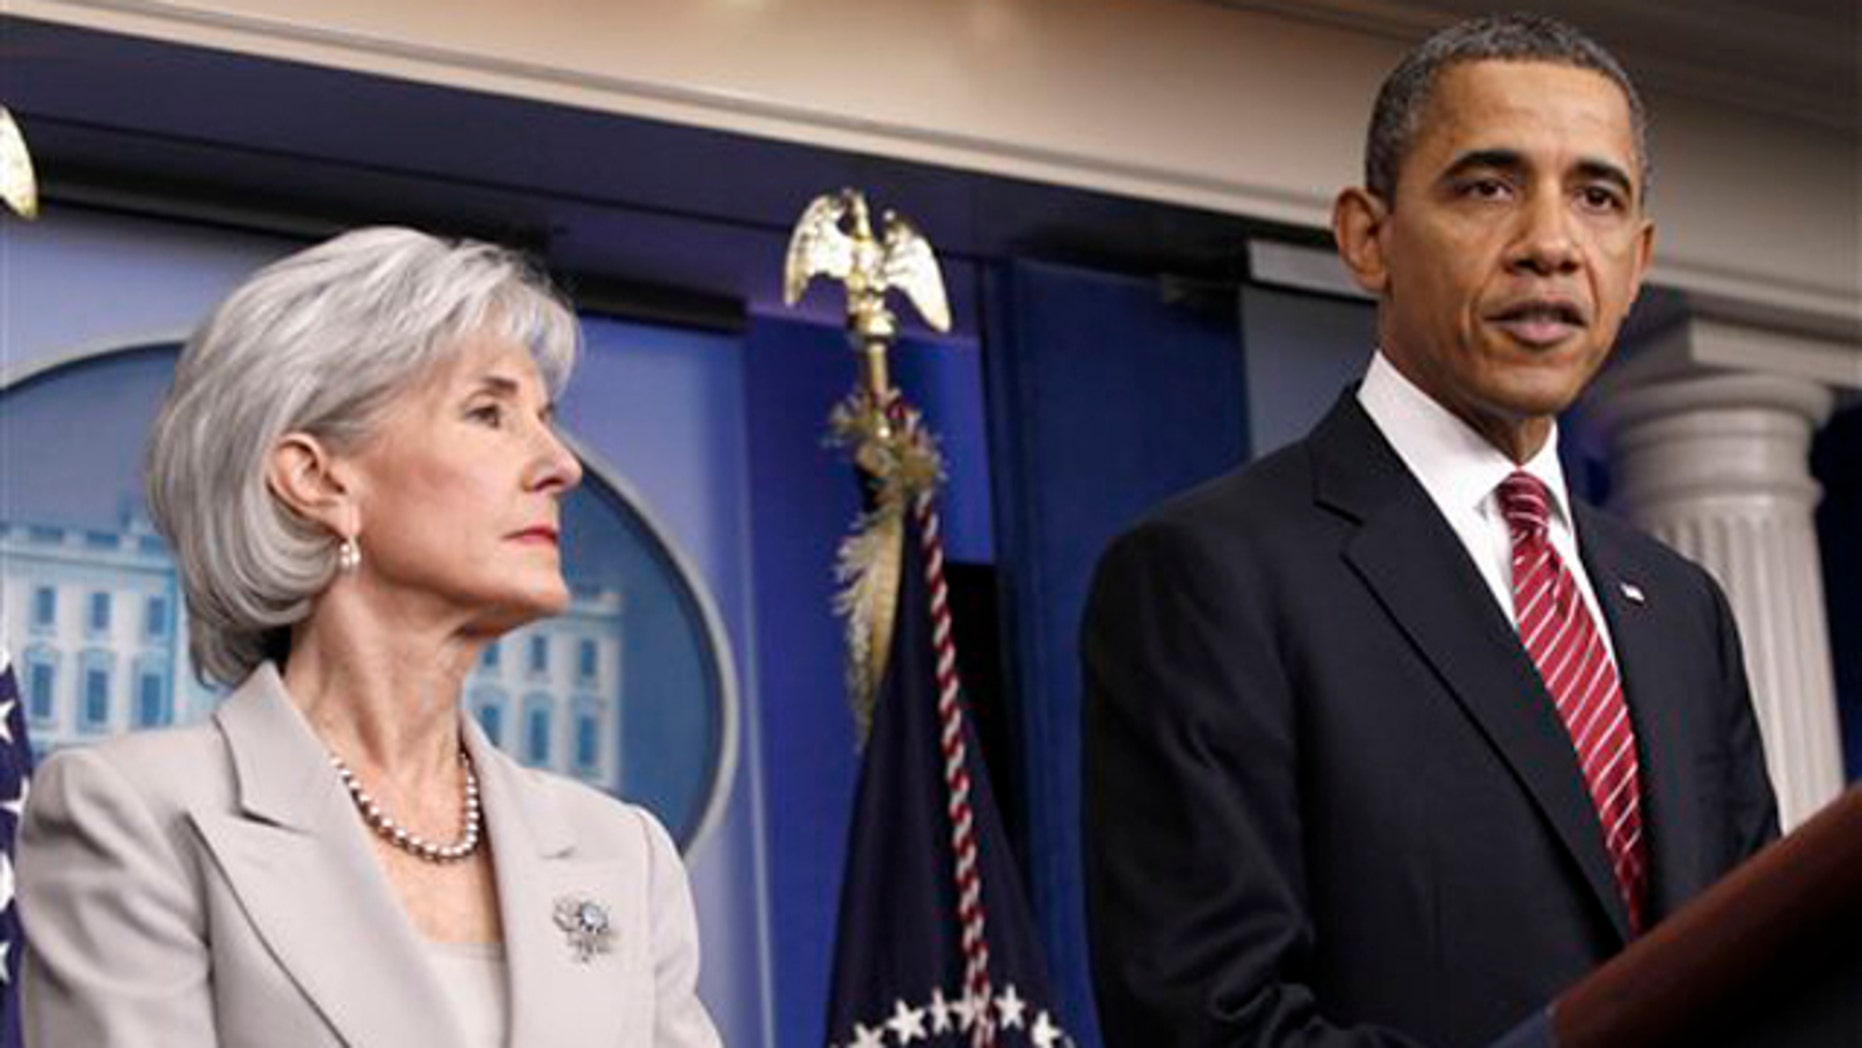 Feb. 10, 2012: President Obama, accompanied by Health and Human Services Secretary Kathleen Sebelius, announces the revamp of his contraception policy at the White House.